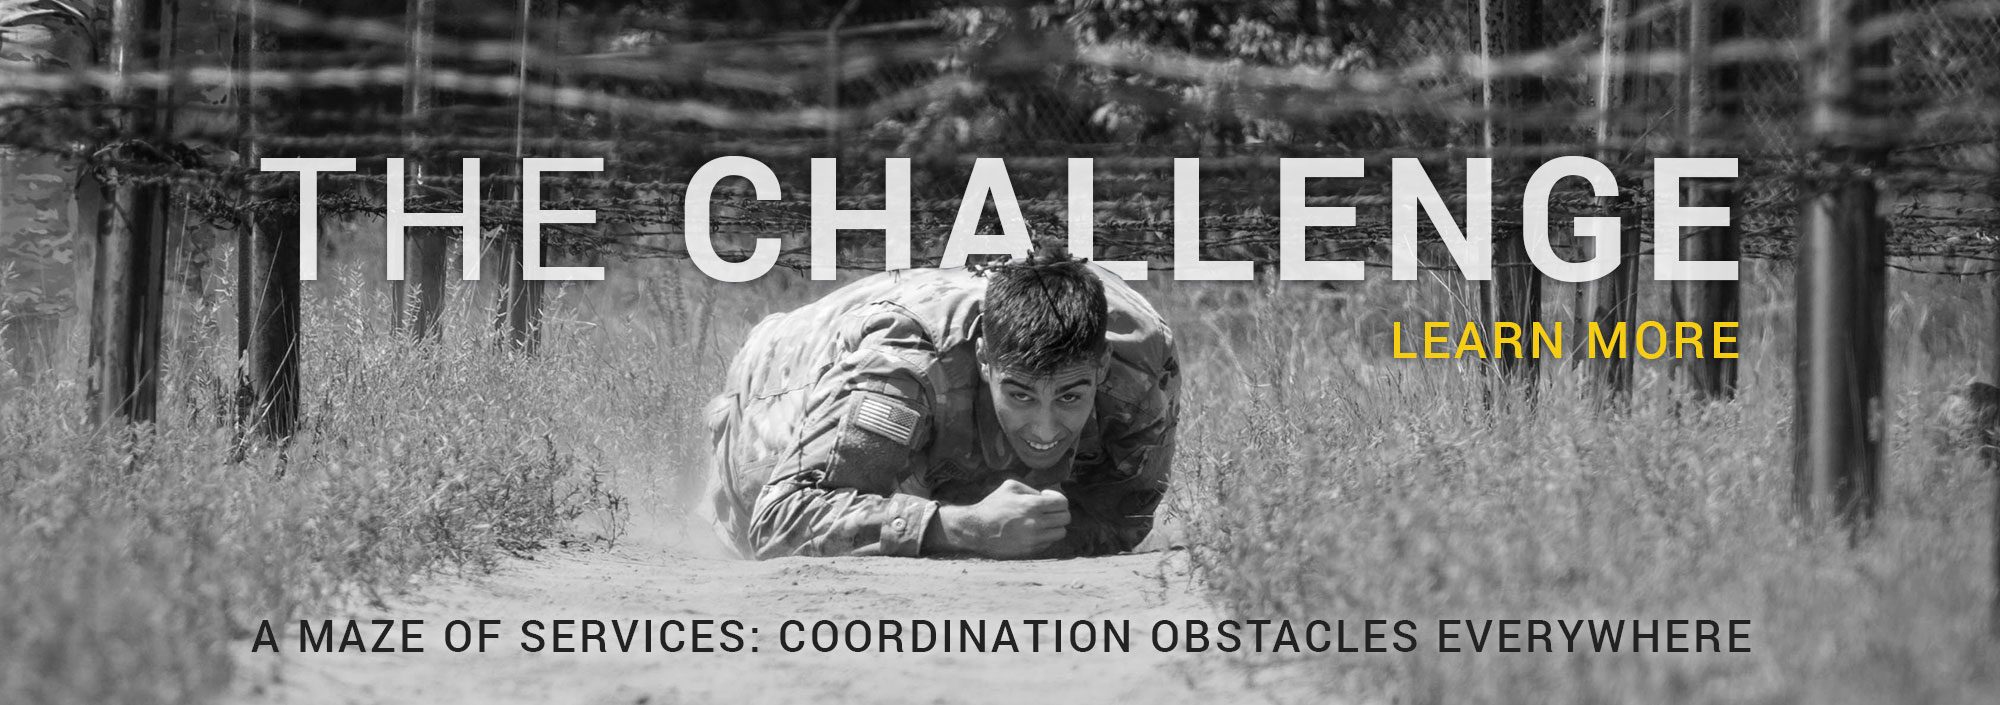 The Challenge - soldier crawling under barbed wire in training